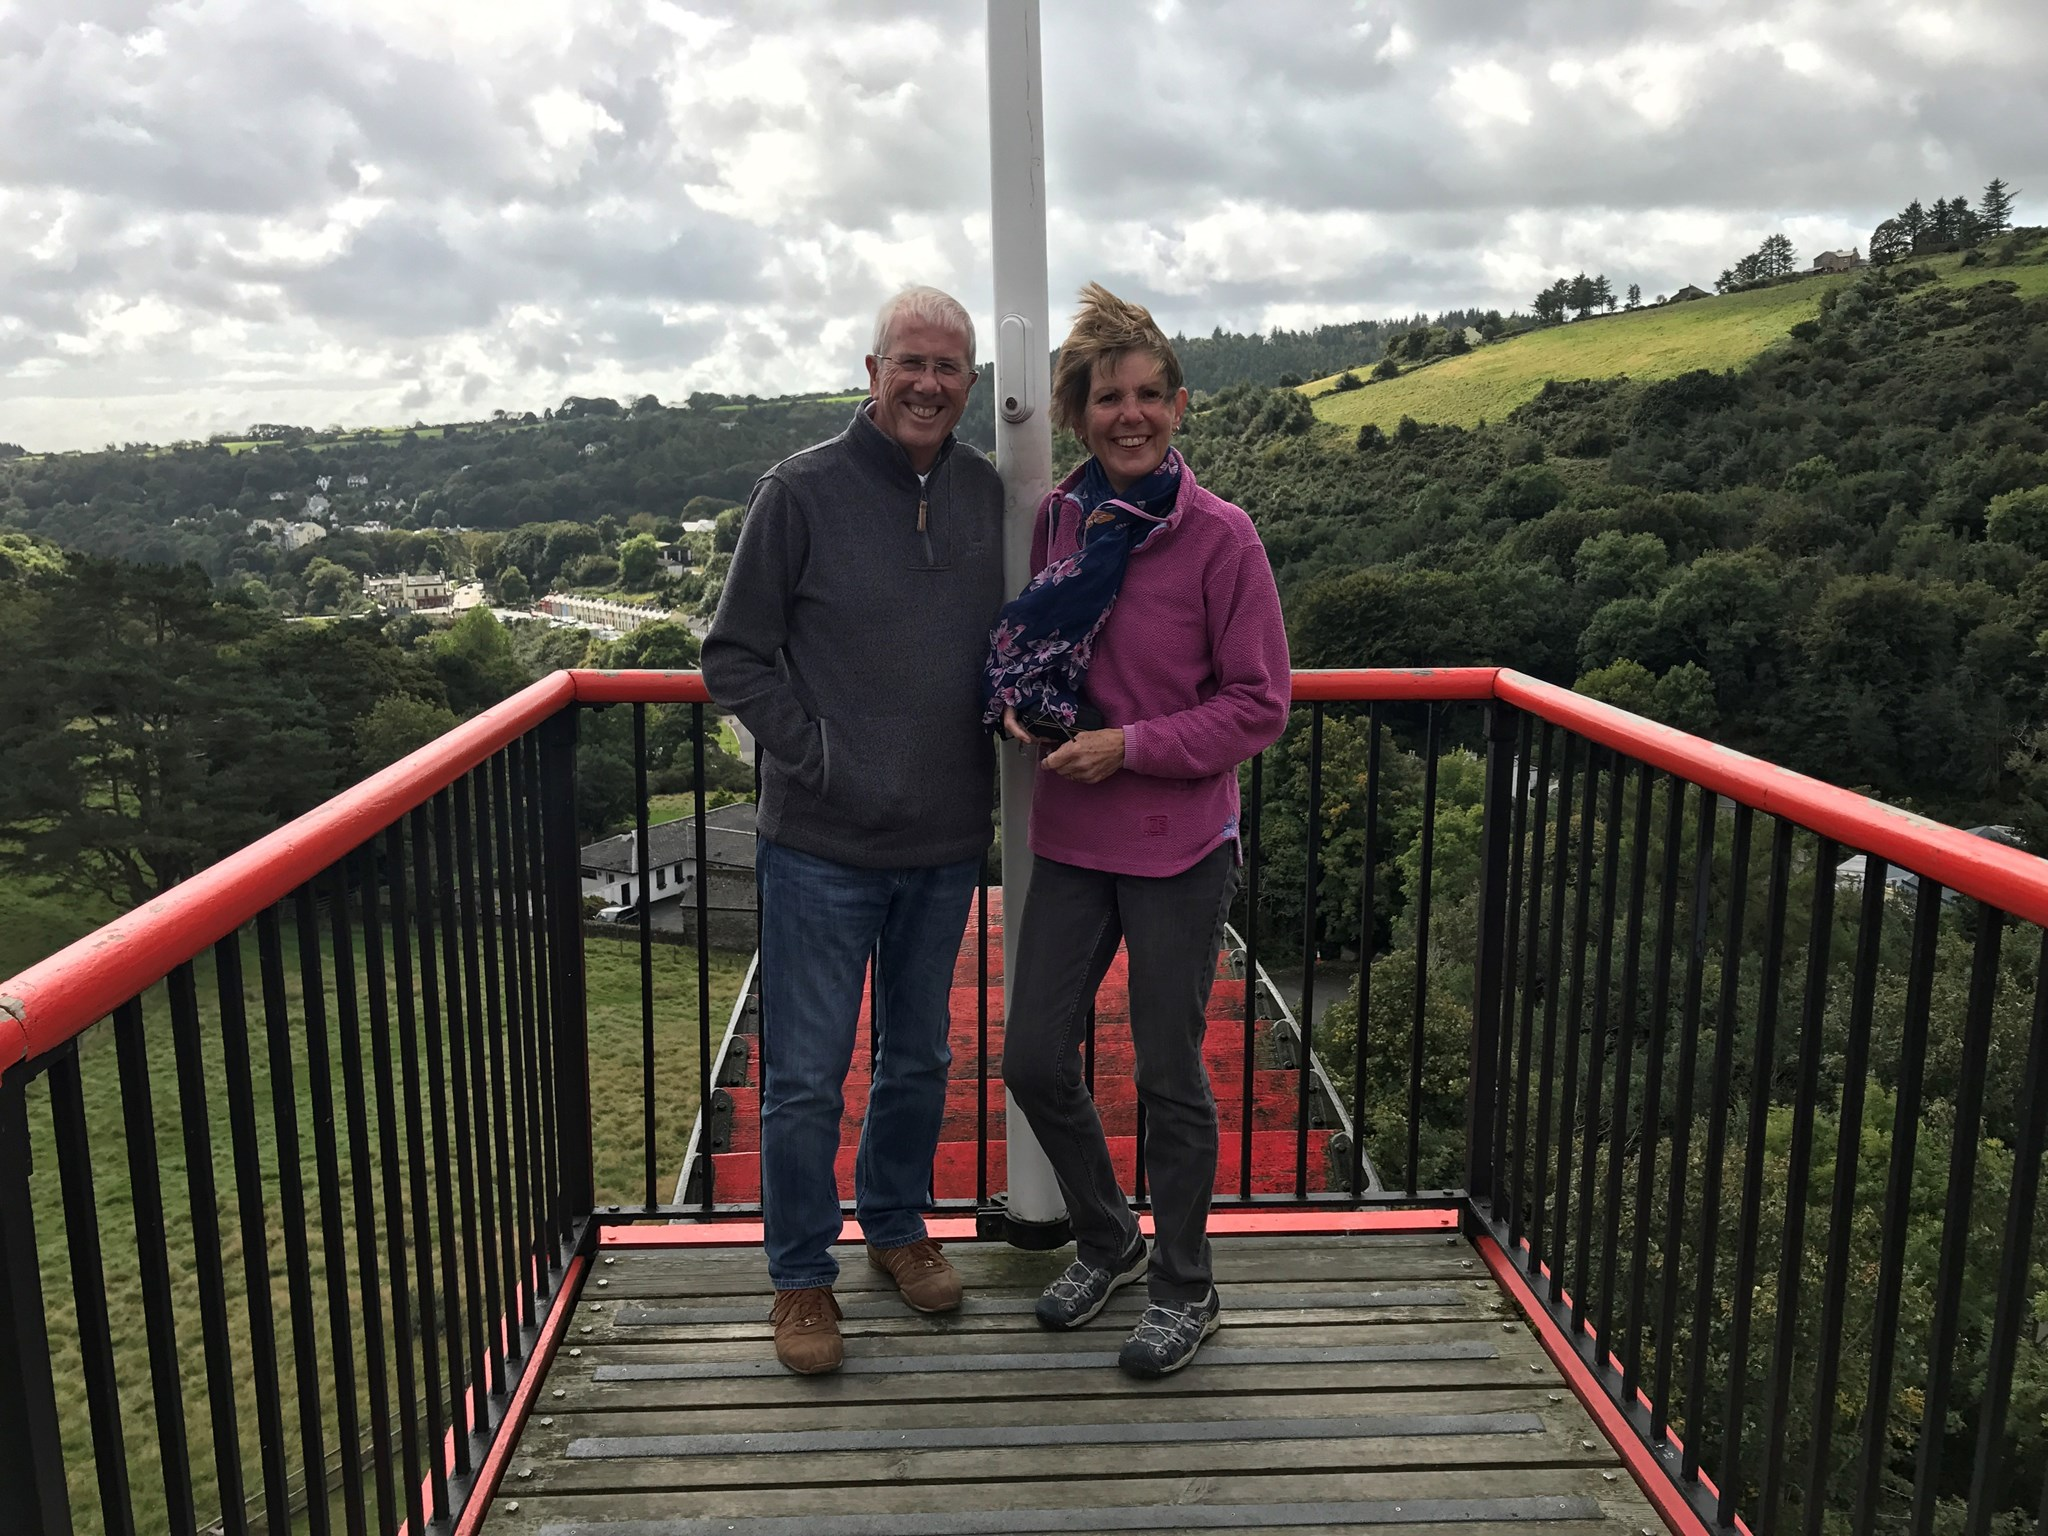 This was taken at the Laxey Wheel we had a great weekend, thanks for the memory Carole. Xx